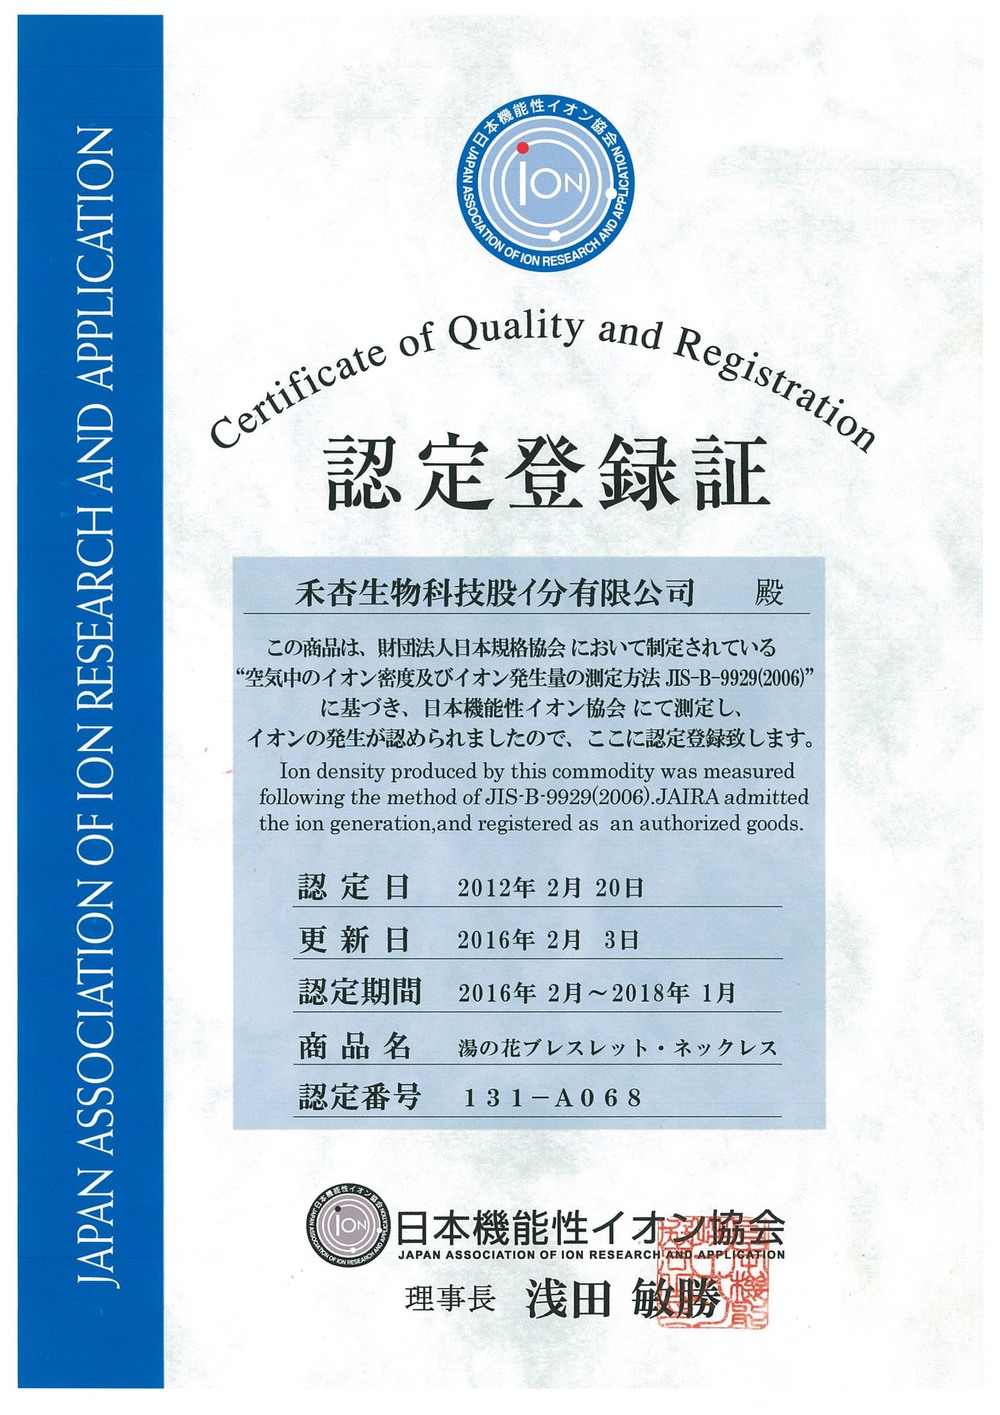 Certificate of Quality and Registration